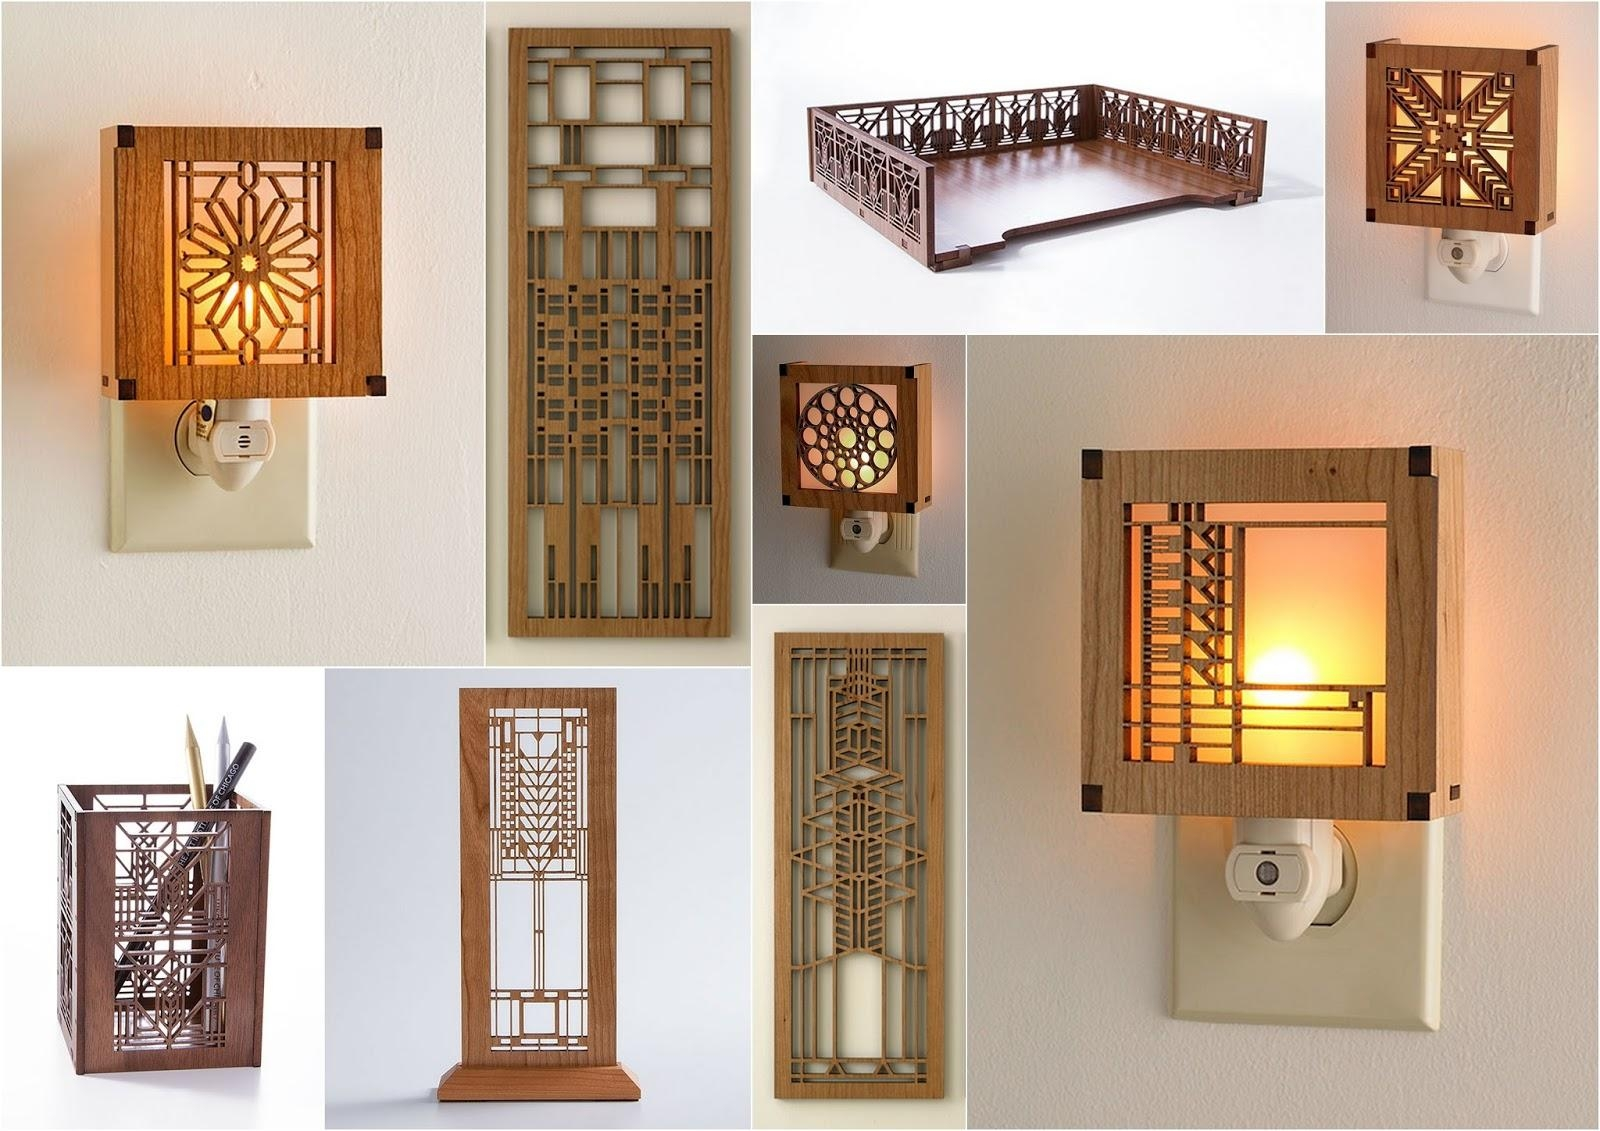 Artifacts: How It's Made : Laser Cut Frank Lloyd Wright® Designs Regarding Frank Lloyd Wright Wall Art (View 6 of 20)